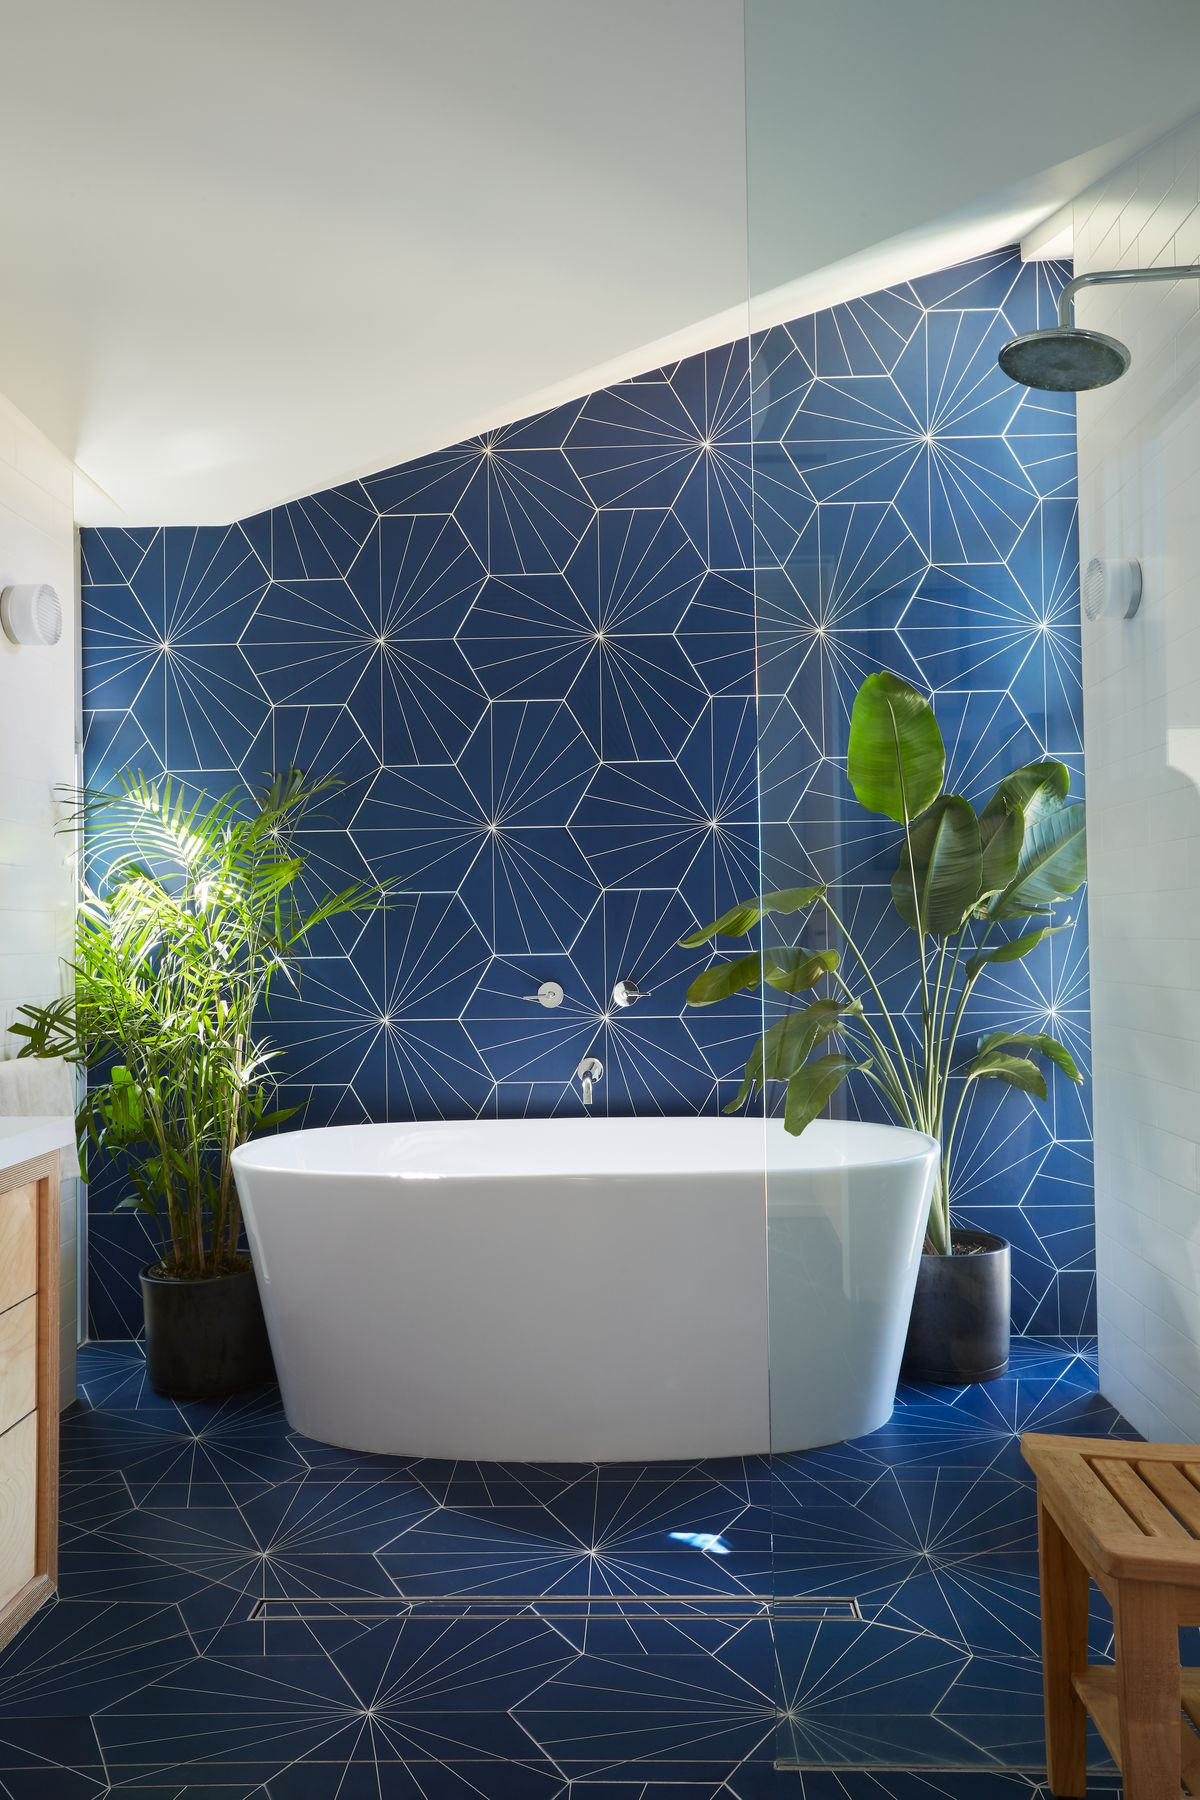 A bathroom with blue and white patterned tiles and a white bath tub. There are plants in planters flanking the tub.